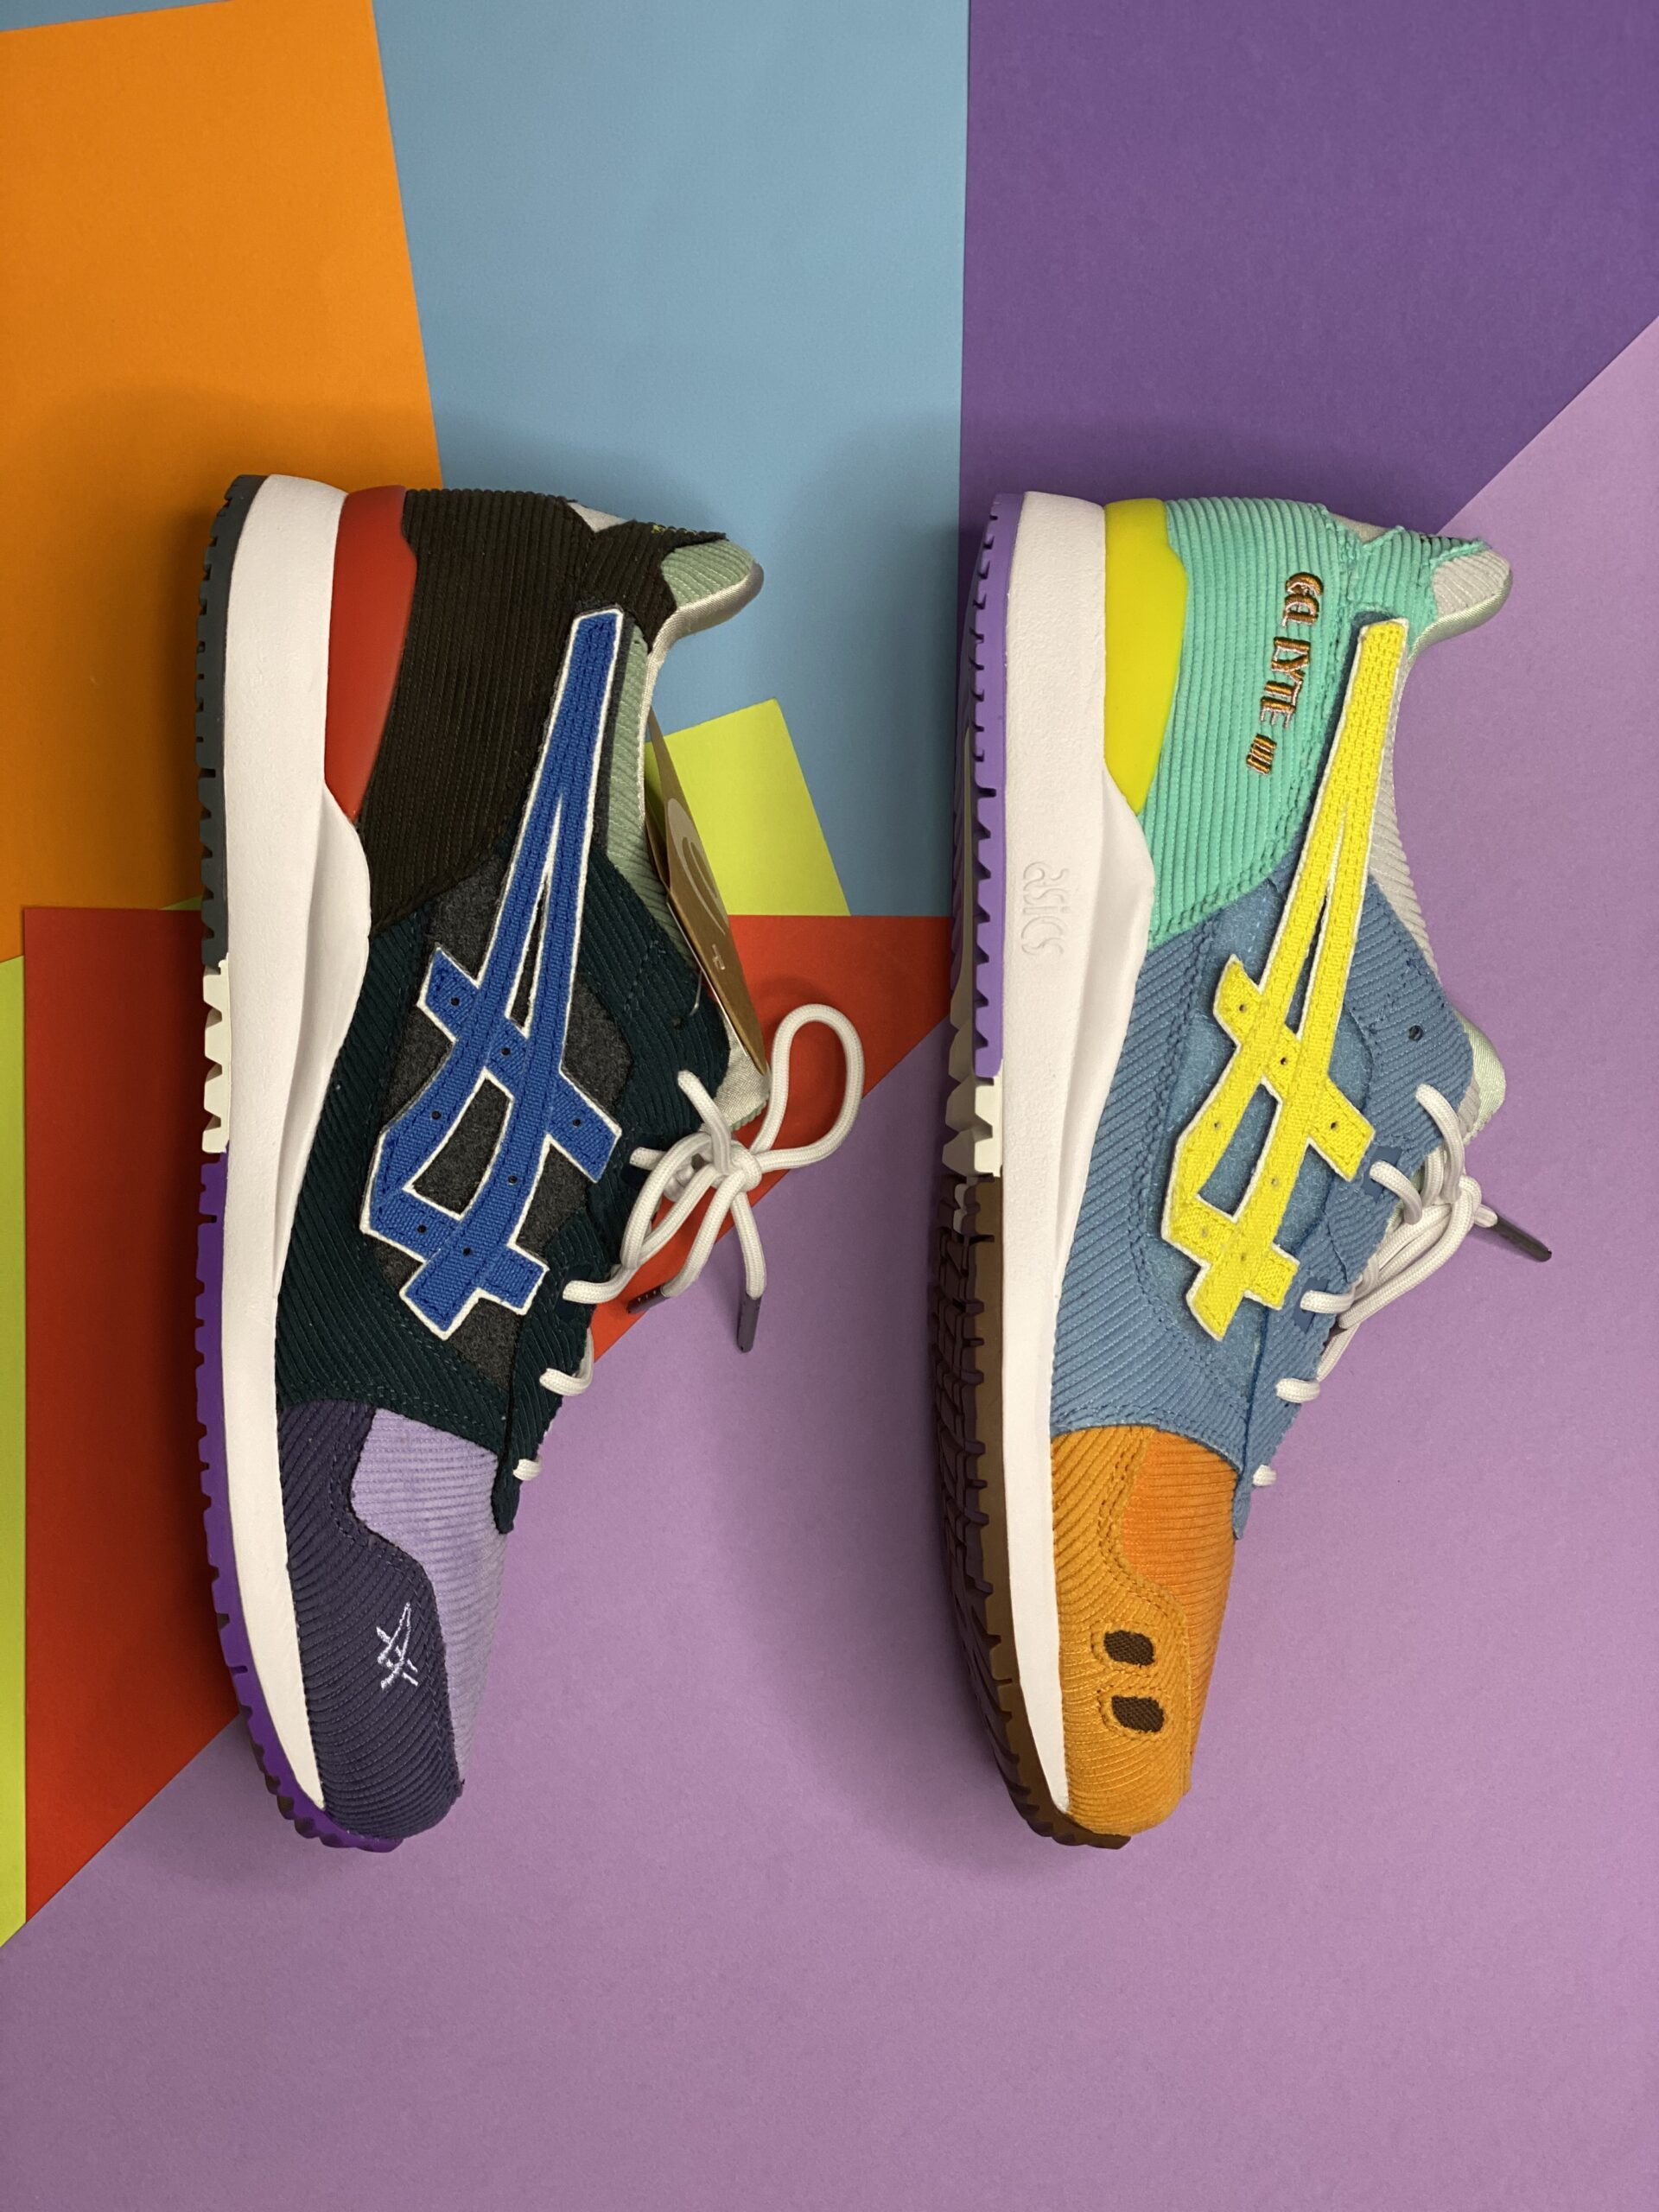 Asics x Sean Wotherspoon